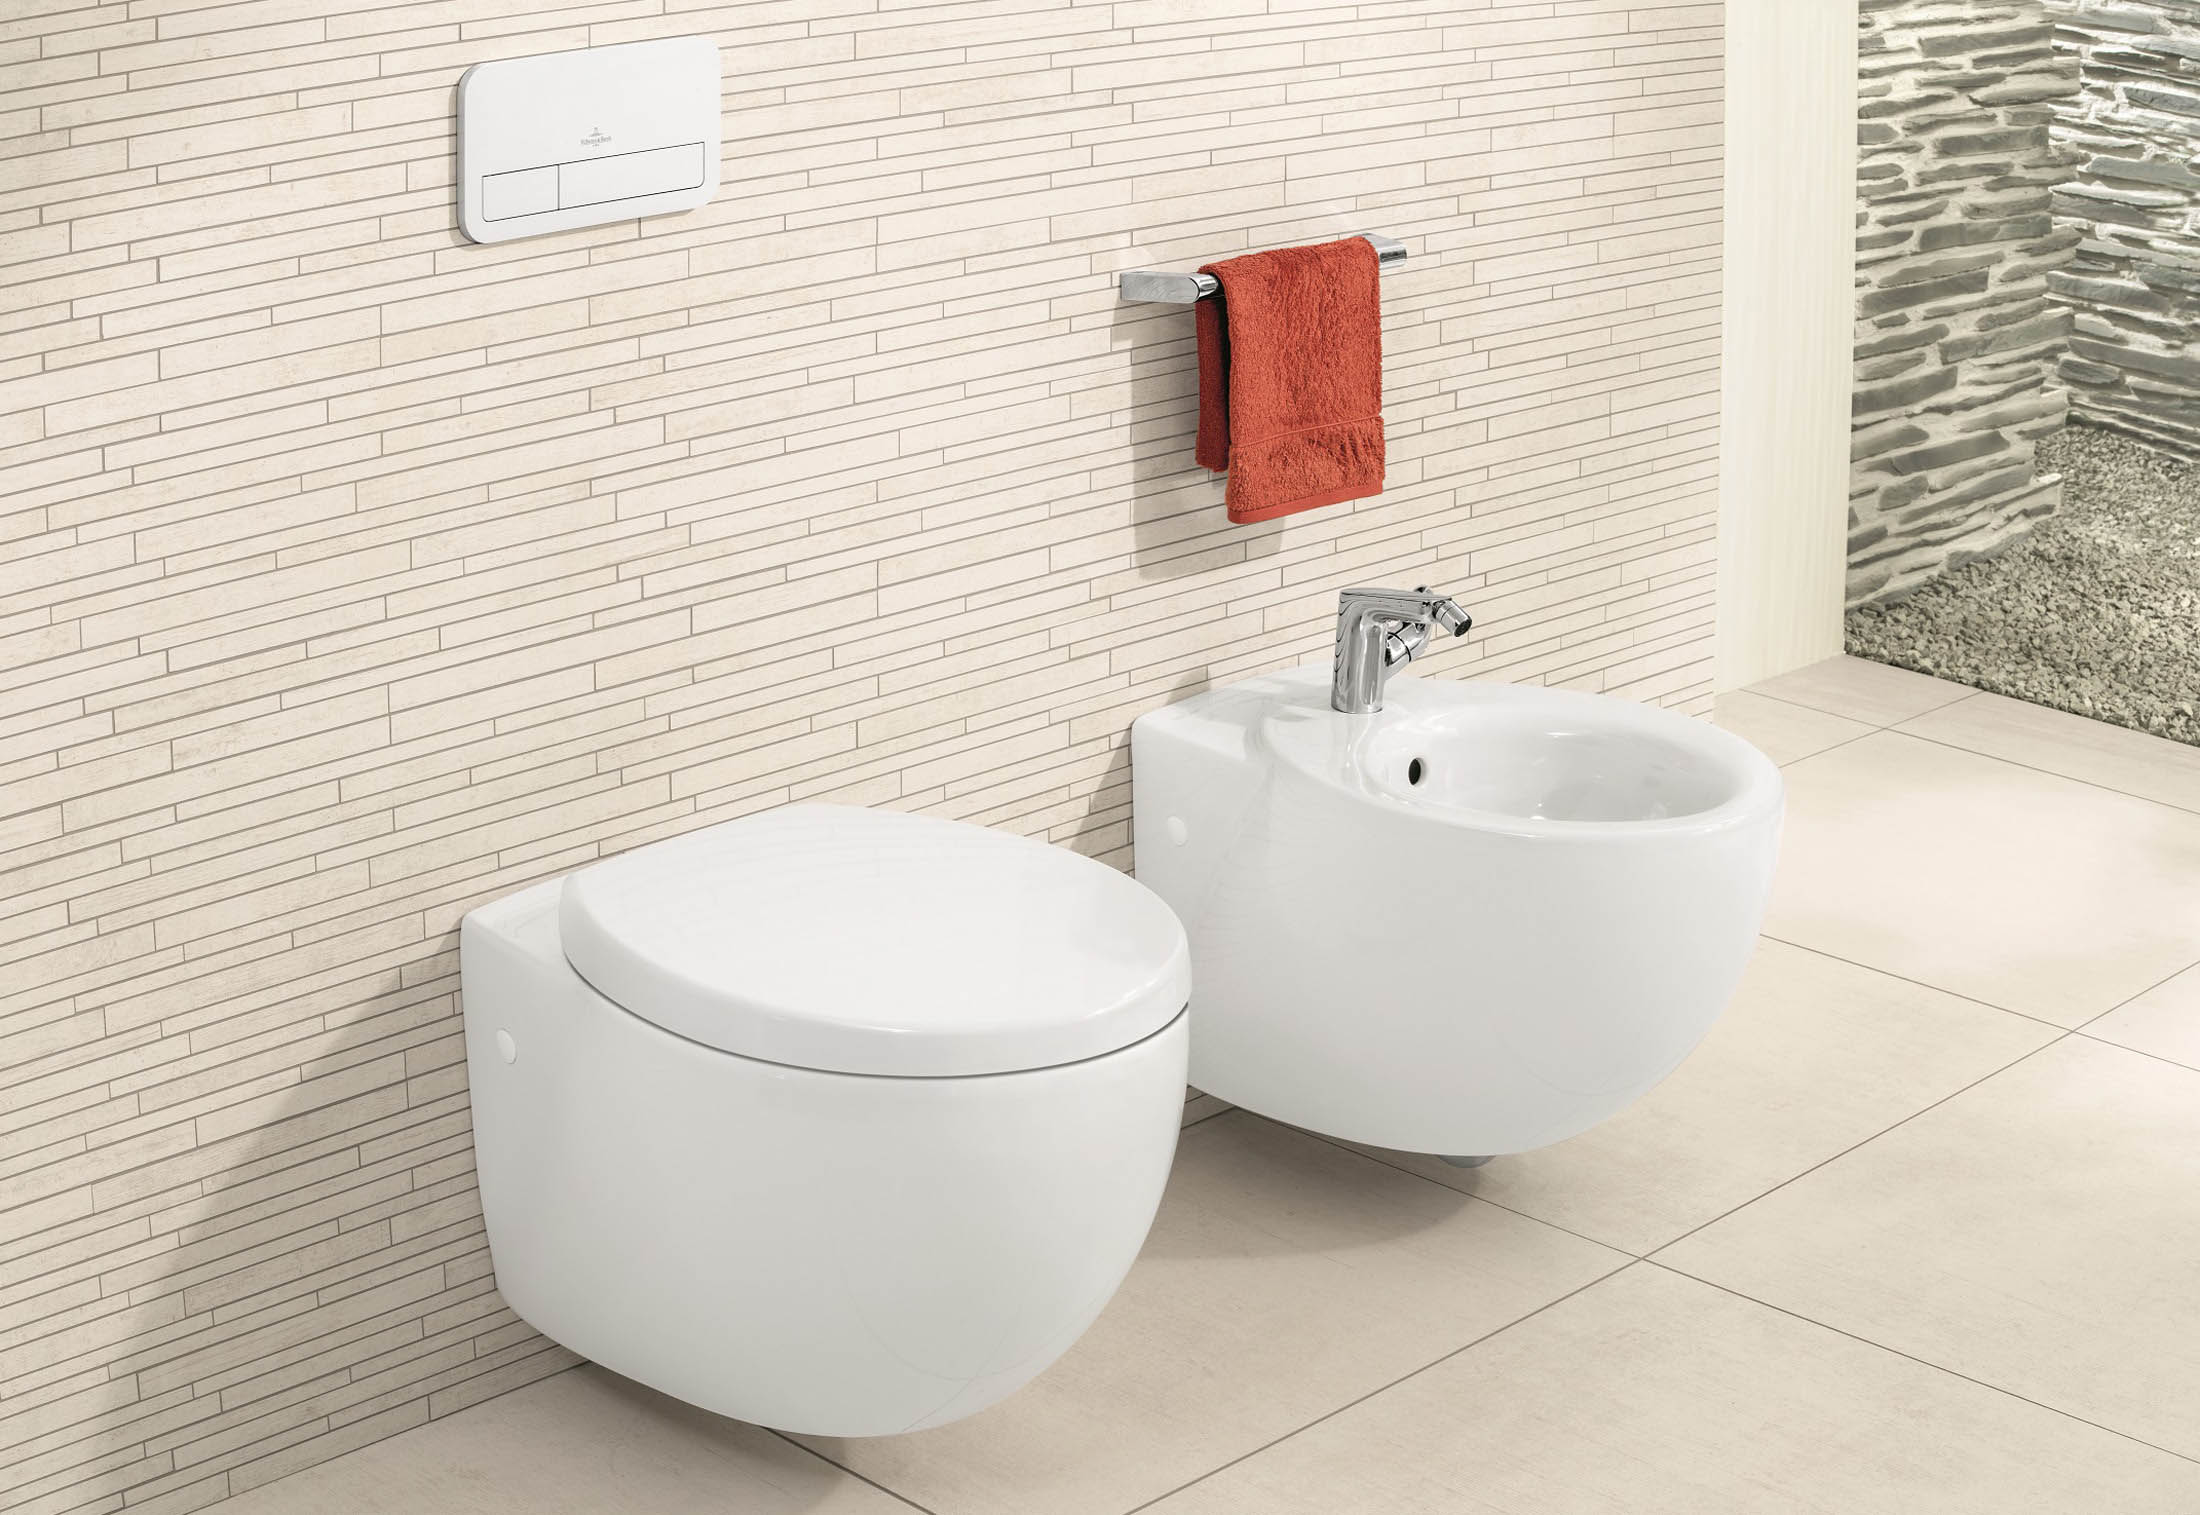 side by side matching toilet and bidet wall mounted at standard height